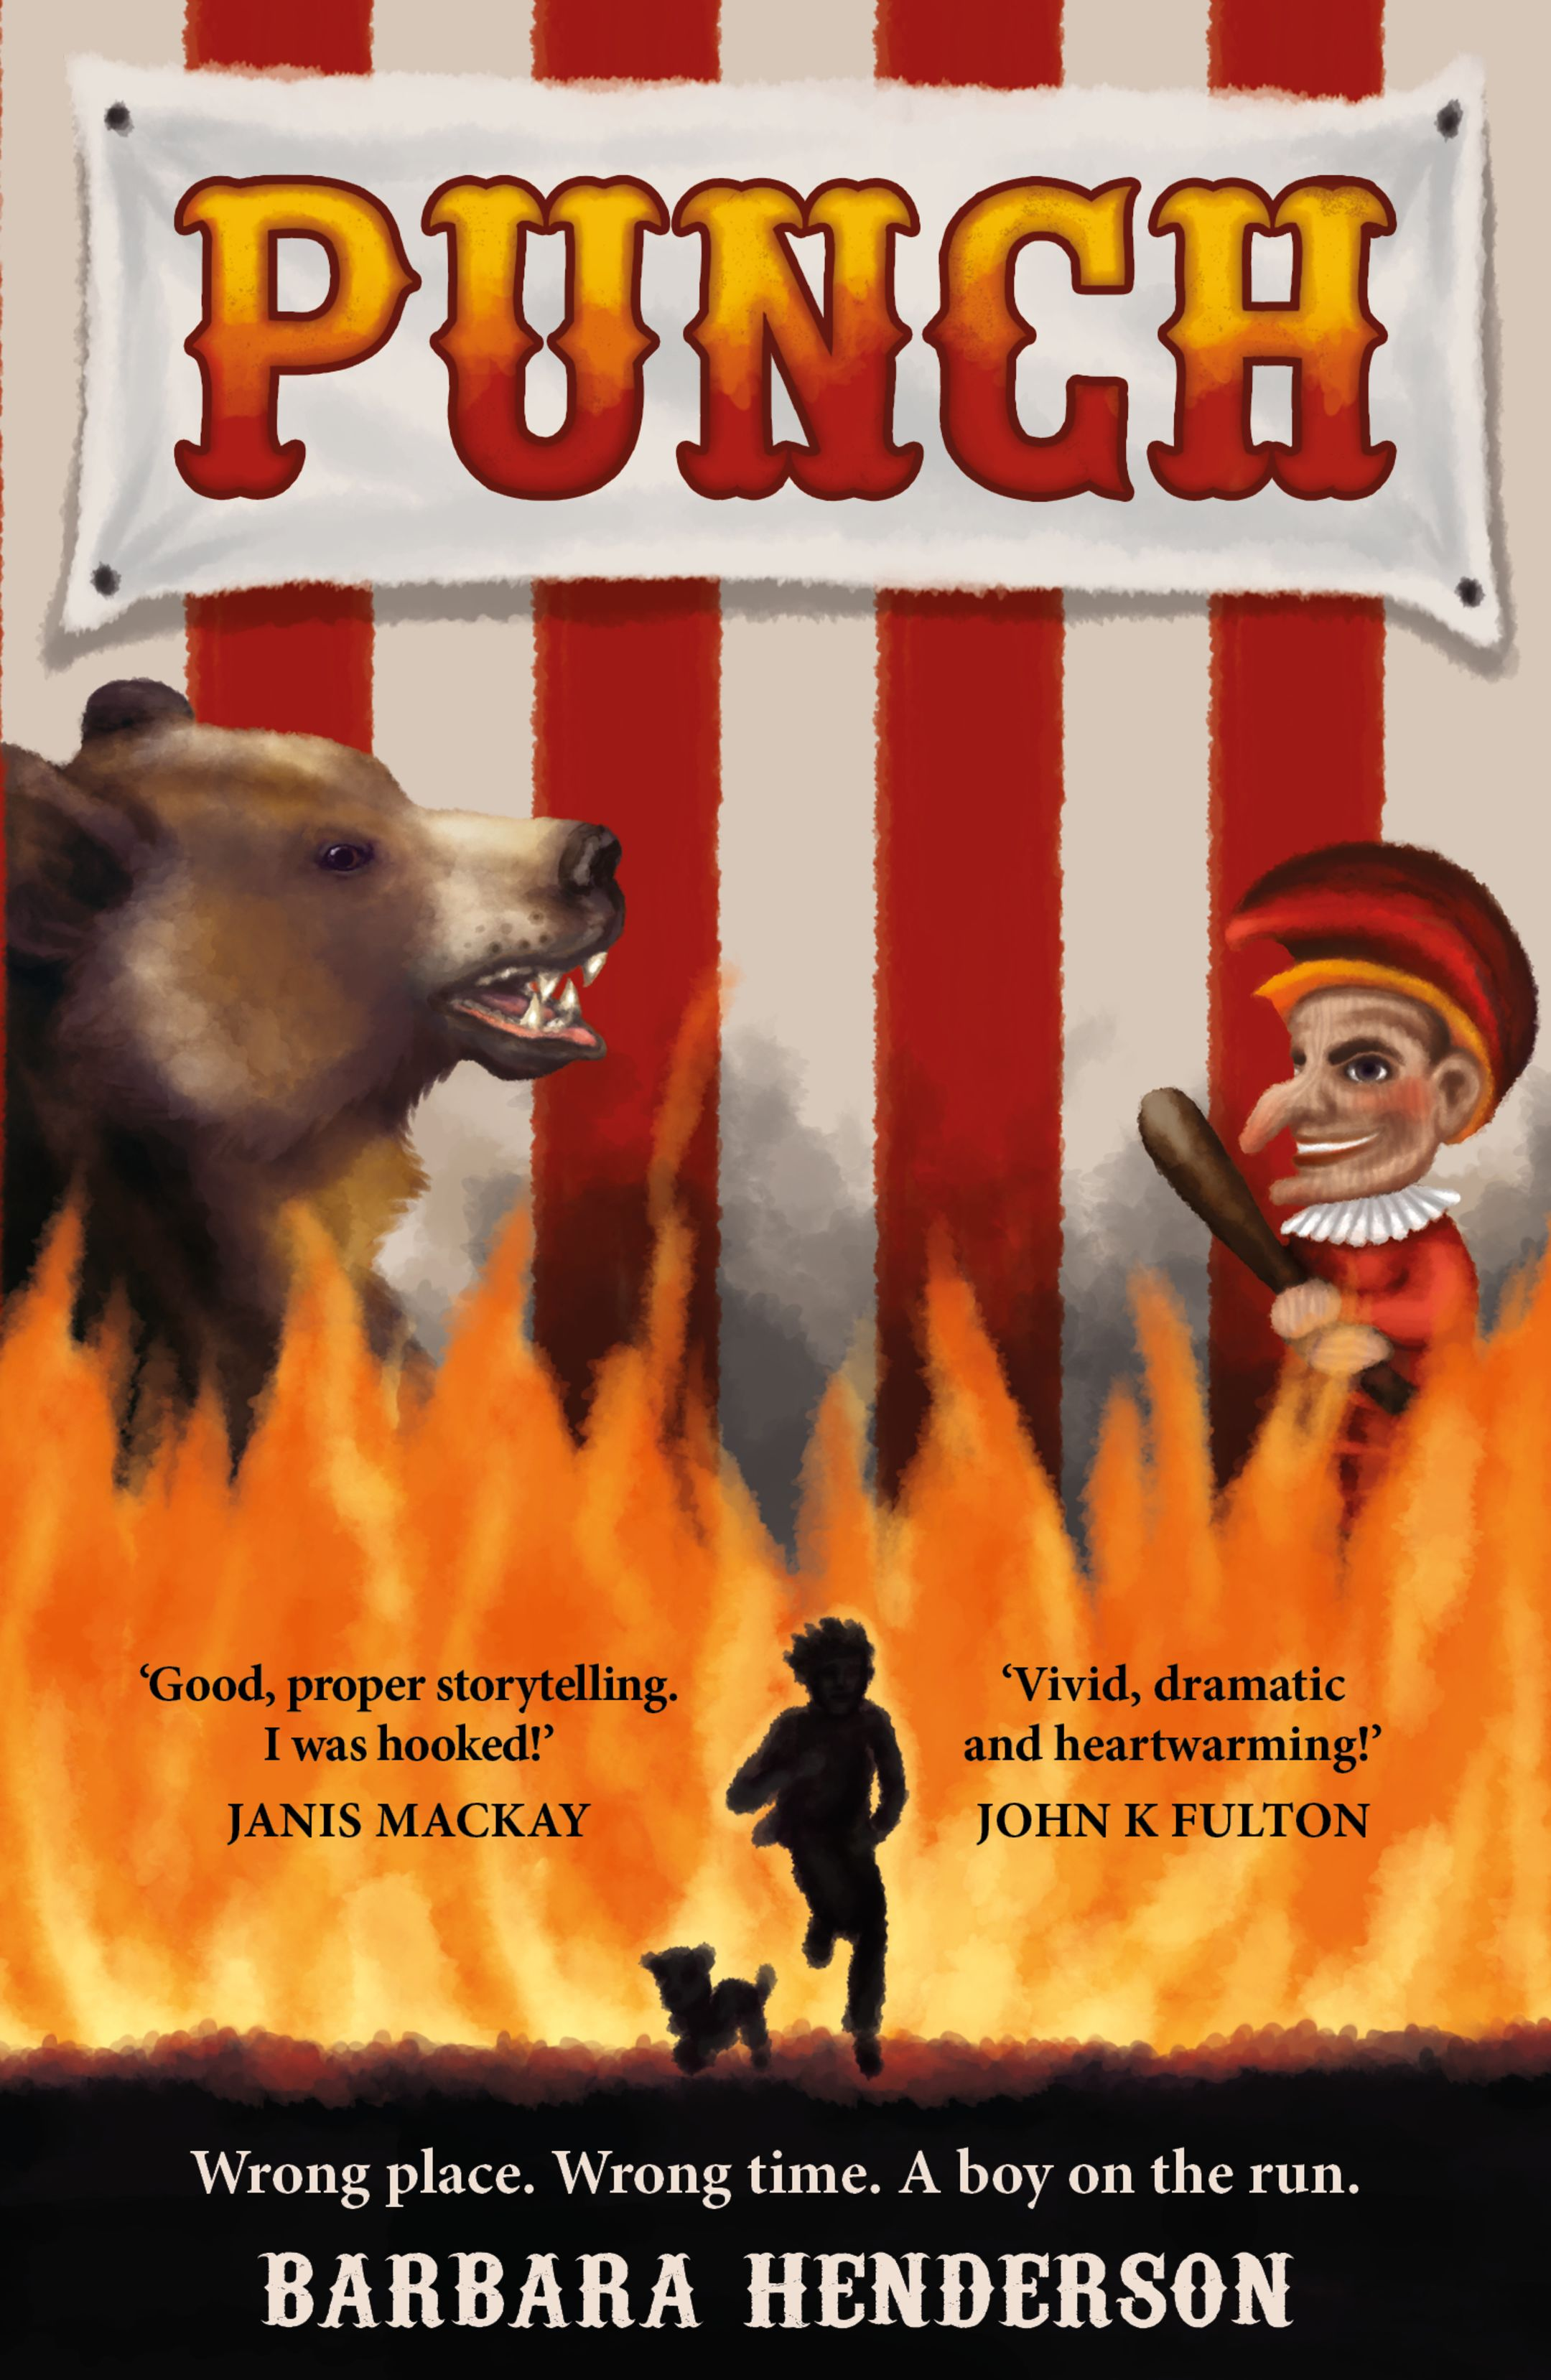 The book cover of Punch, by Barbara Henderson